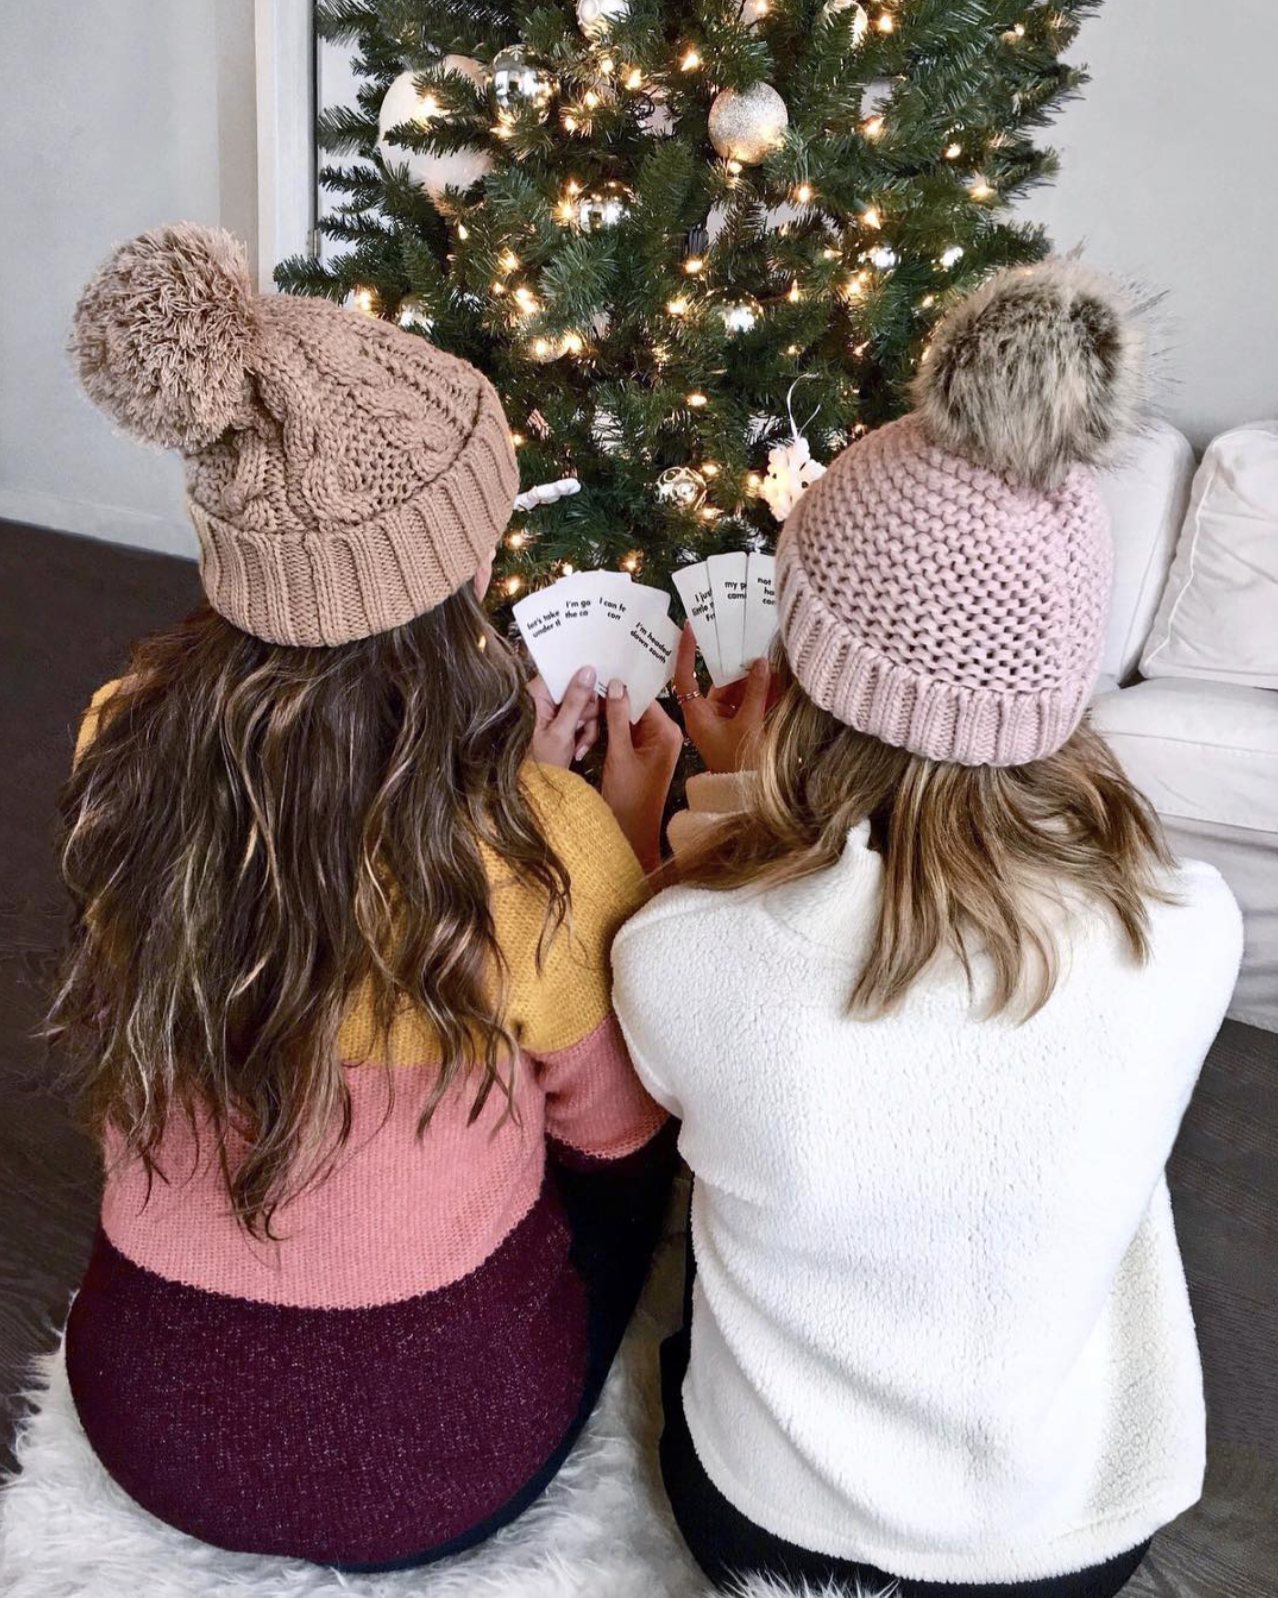 Mash Elle beauty blogger | where to find the best beanies | how to wear beanies | cute beanies for winter | cards against humanity | girl date | pom pom winter beanies | winter outfit | snow outfit